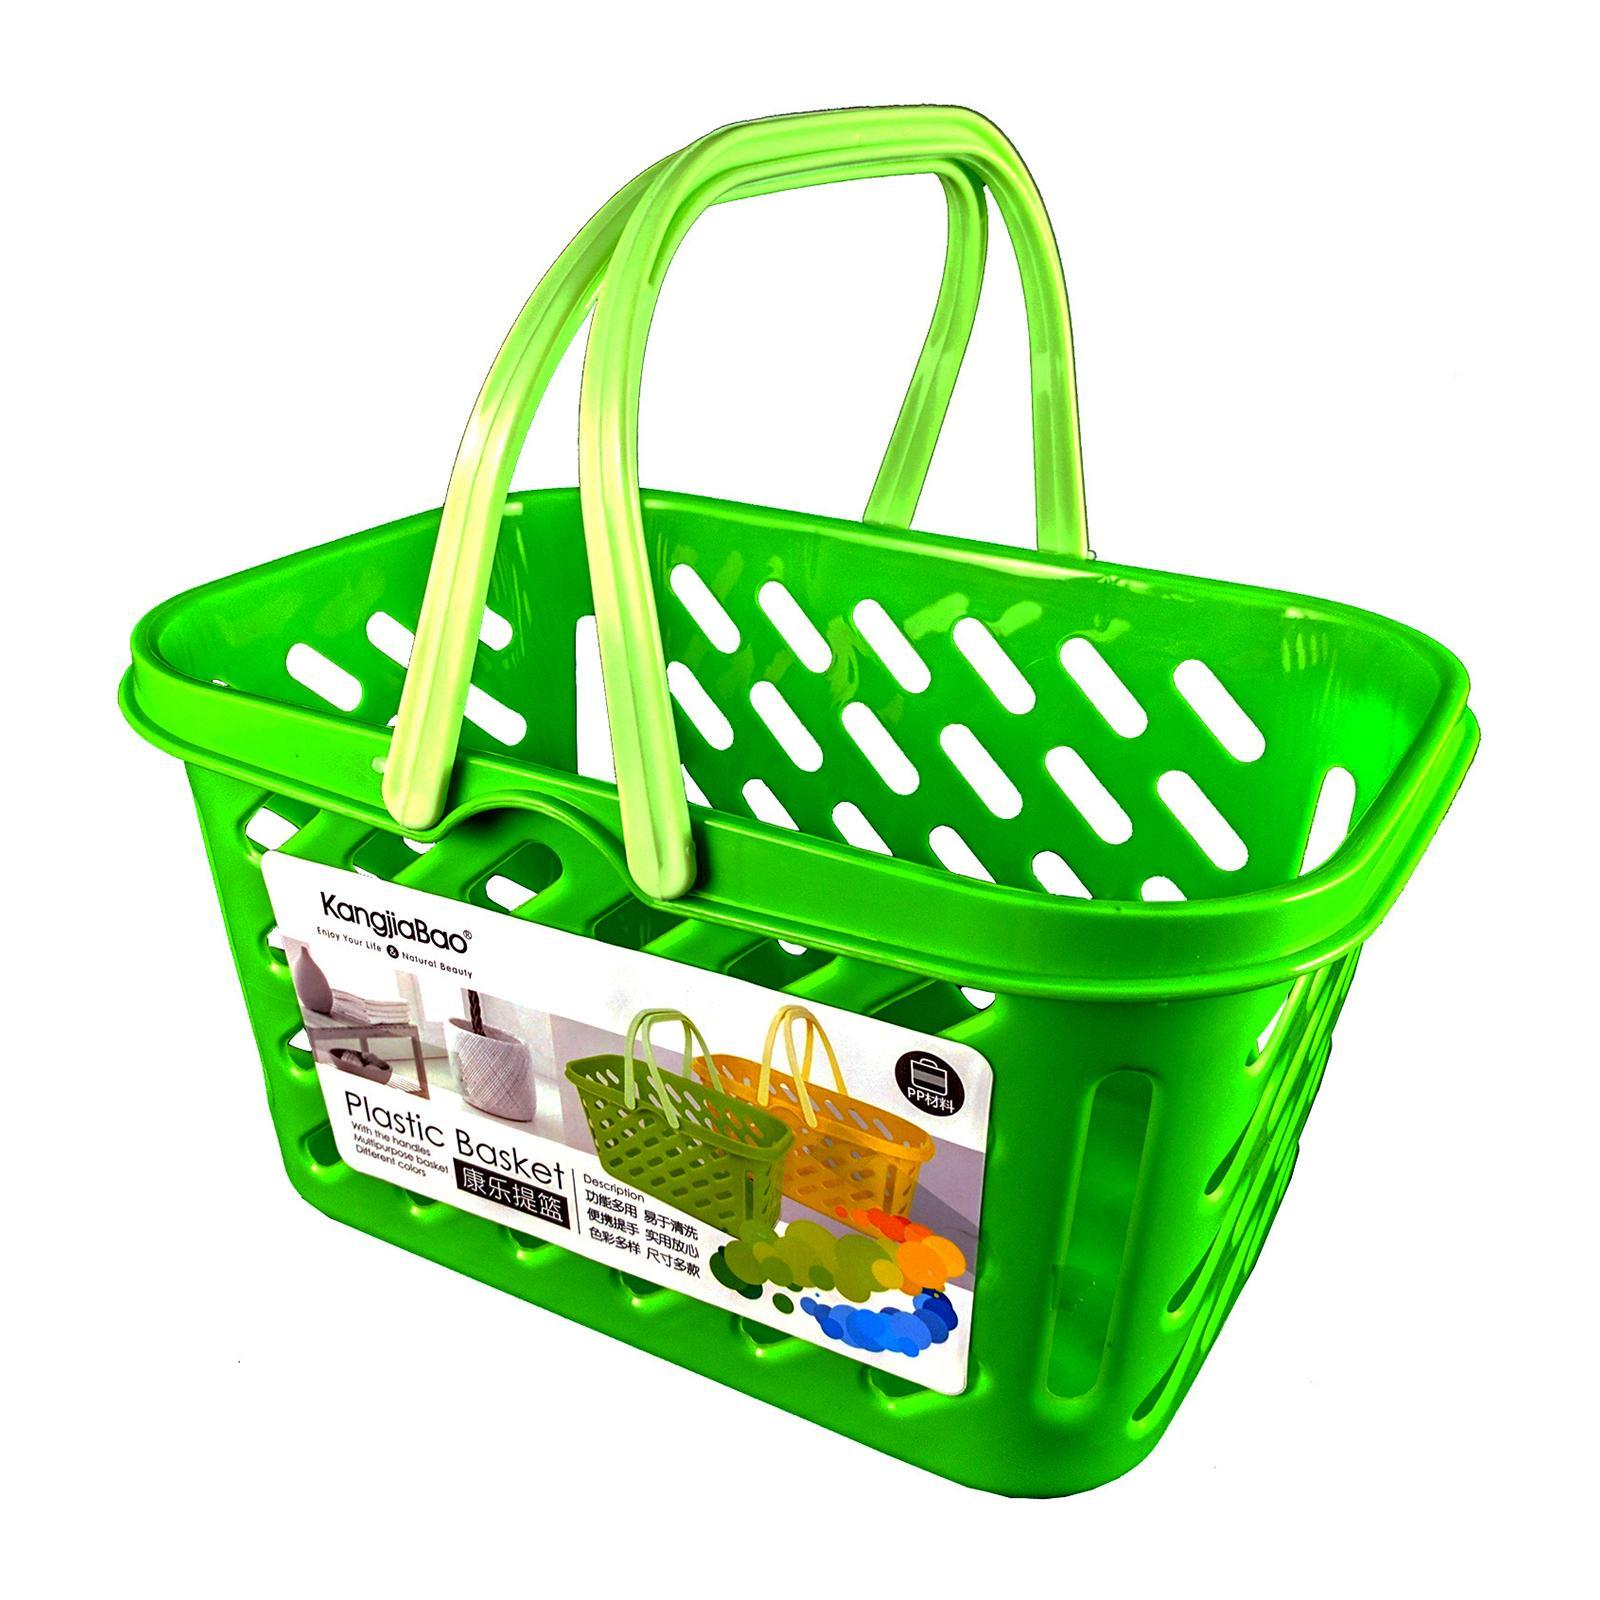 KangjiaBao Small Plastic Multipurpose Basket With Handles 25x17.5x13 Cm (Green)